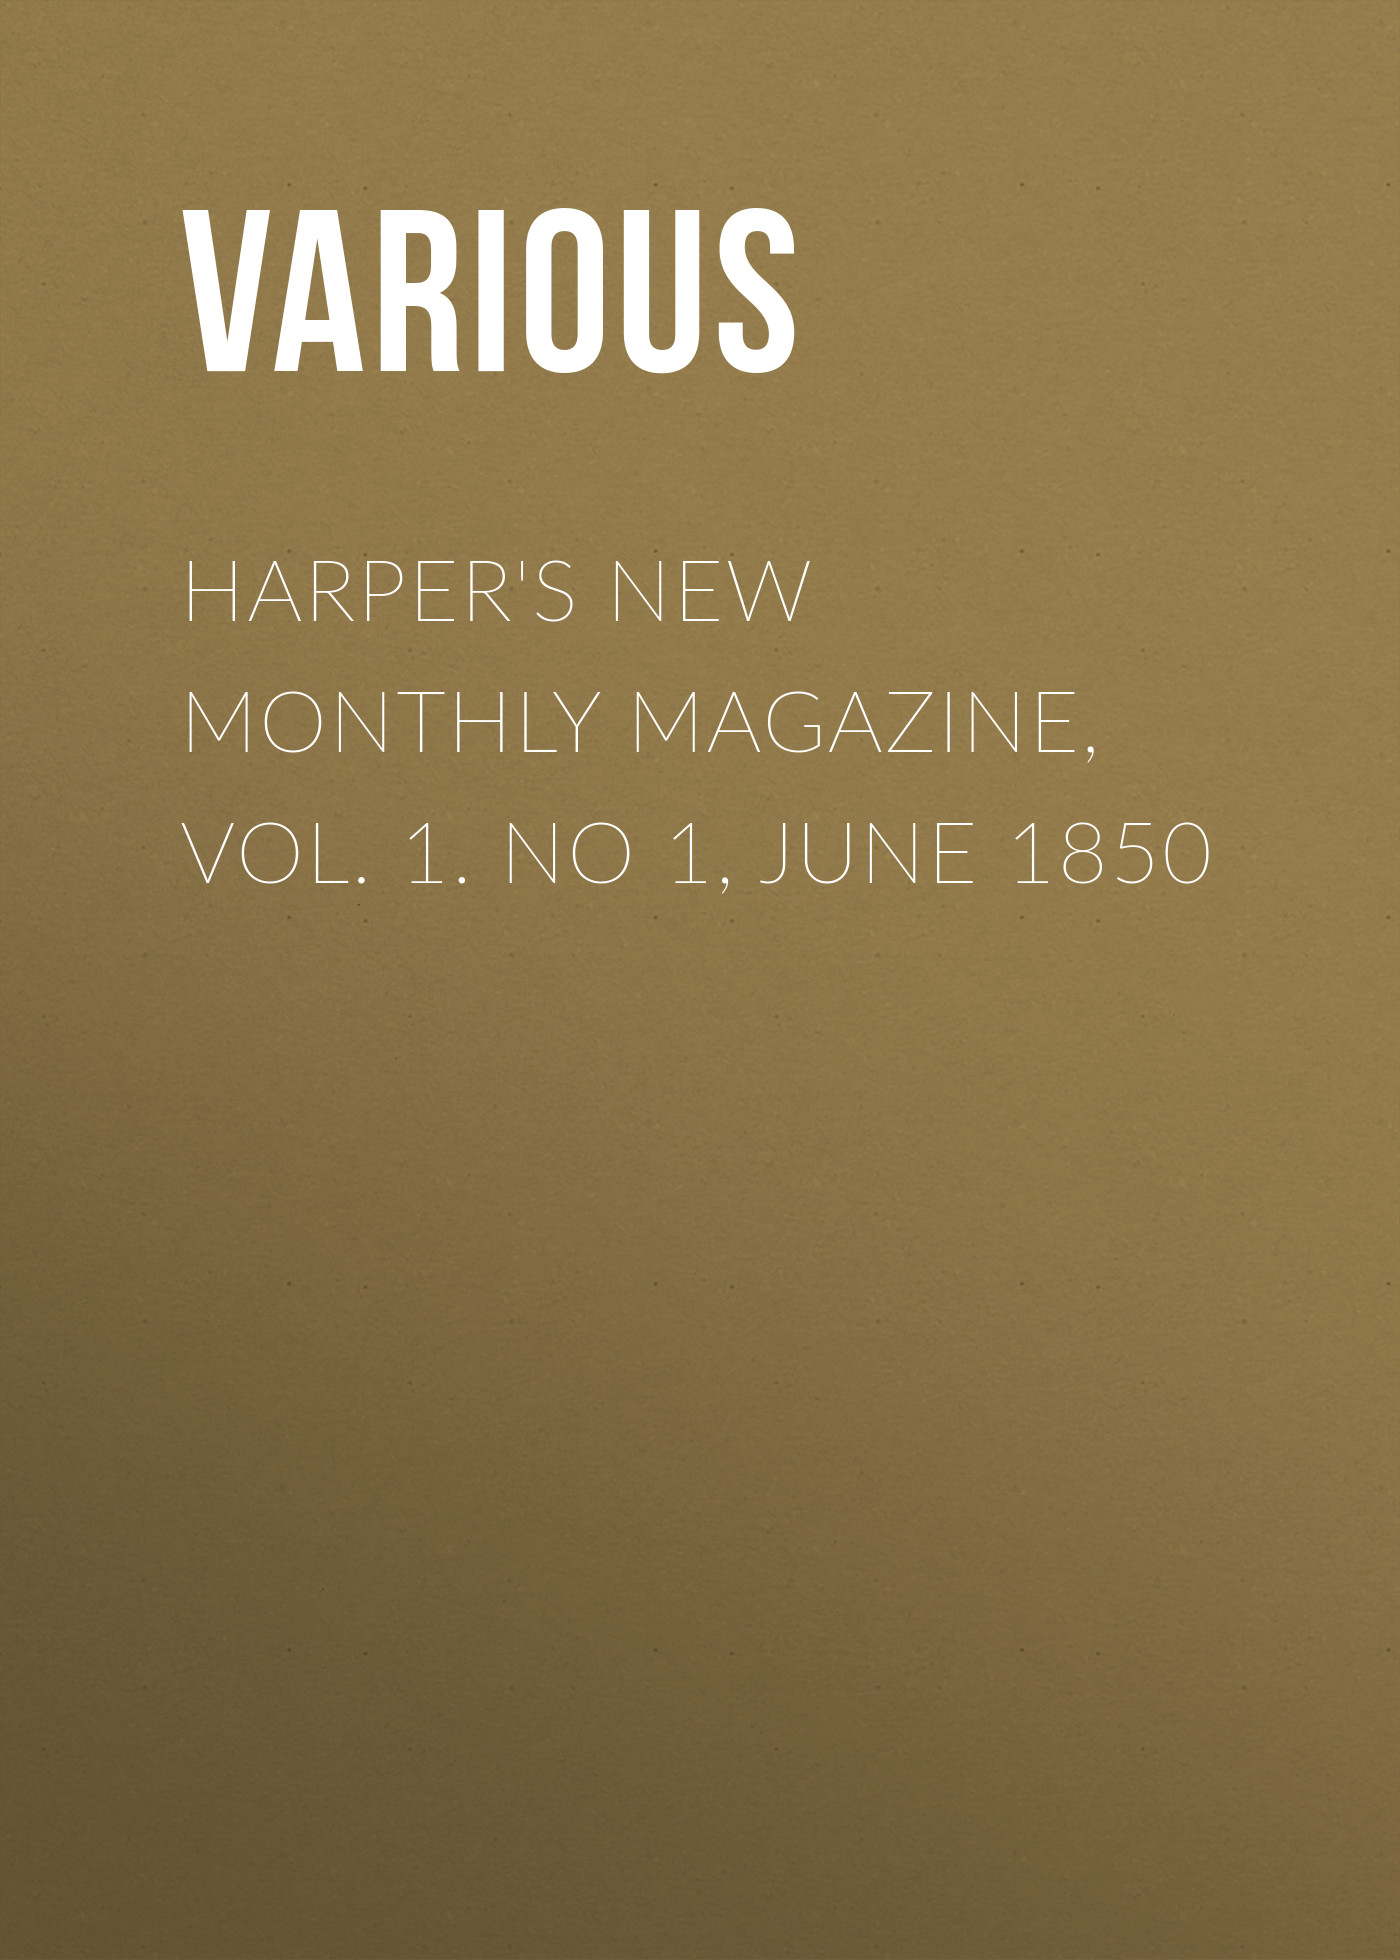 Various Harper's New Monthly Magazine, Vol. 1. No 1, June 1850 various harper s new monthly magazine vol iv no xx january 1852